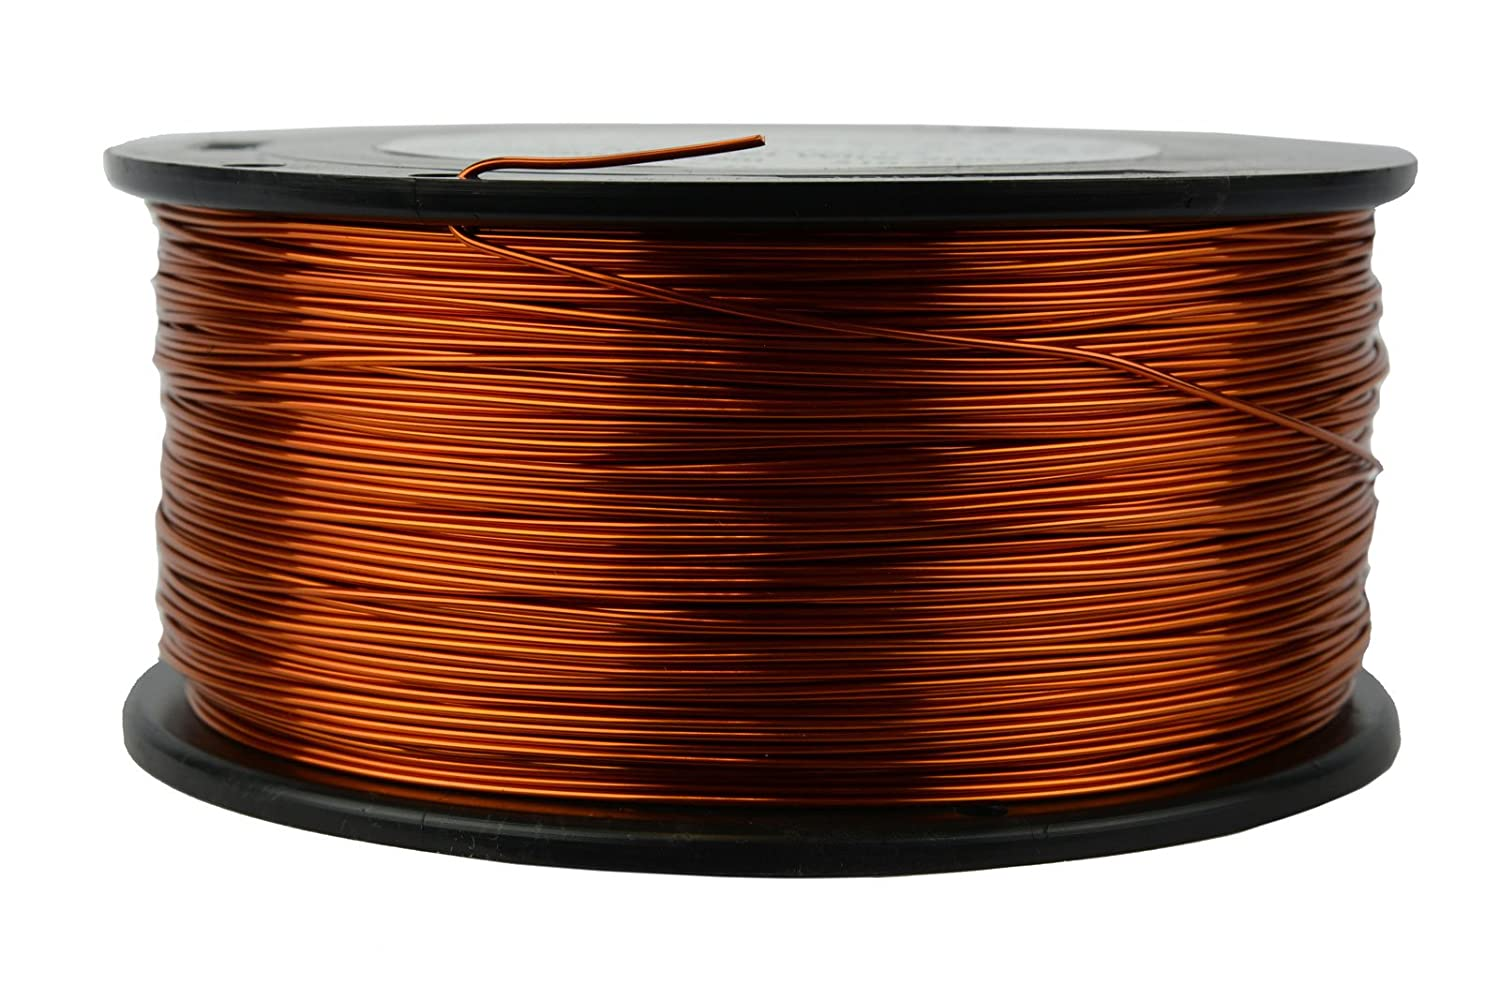 Temco 8 Awg Copper Magnet Wire 1 Lb 20 Ft 200c Magnetic Coil Winding Wiring Transformer Home Improvement